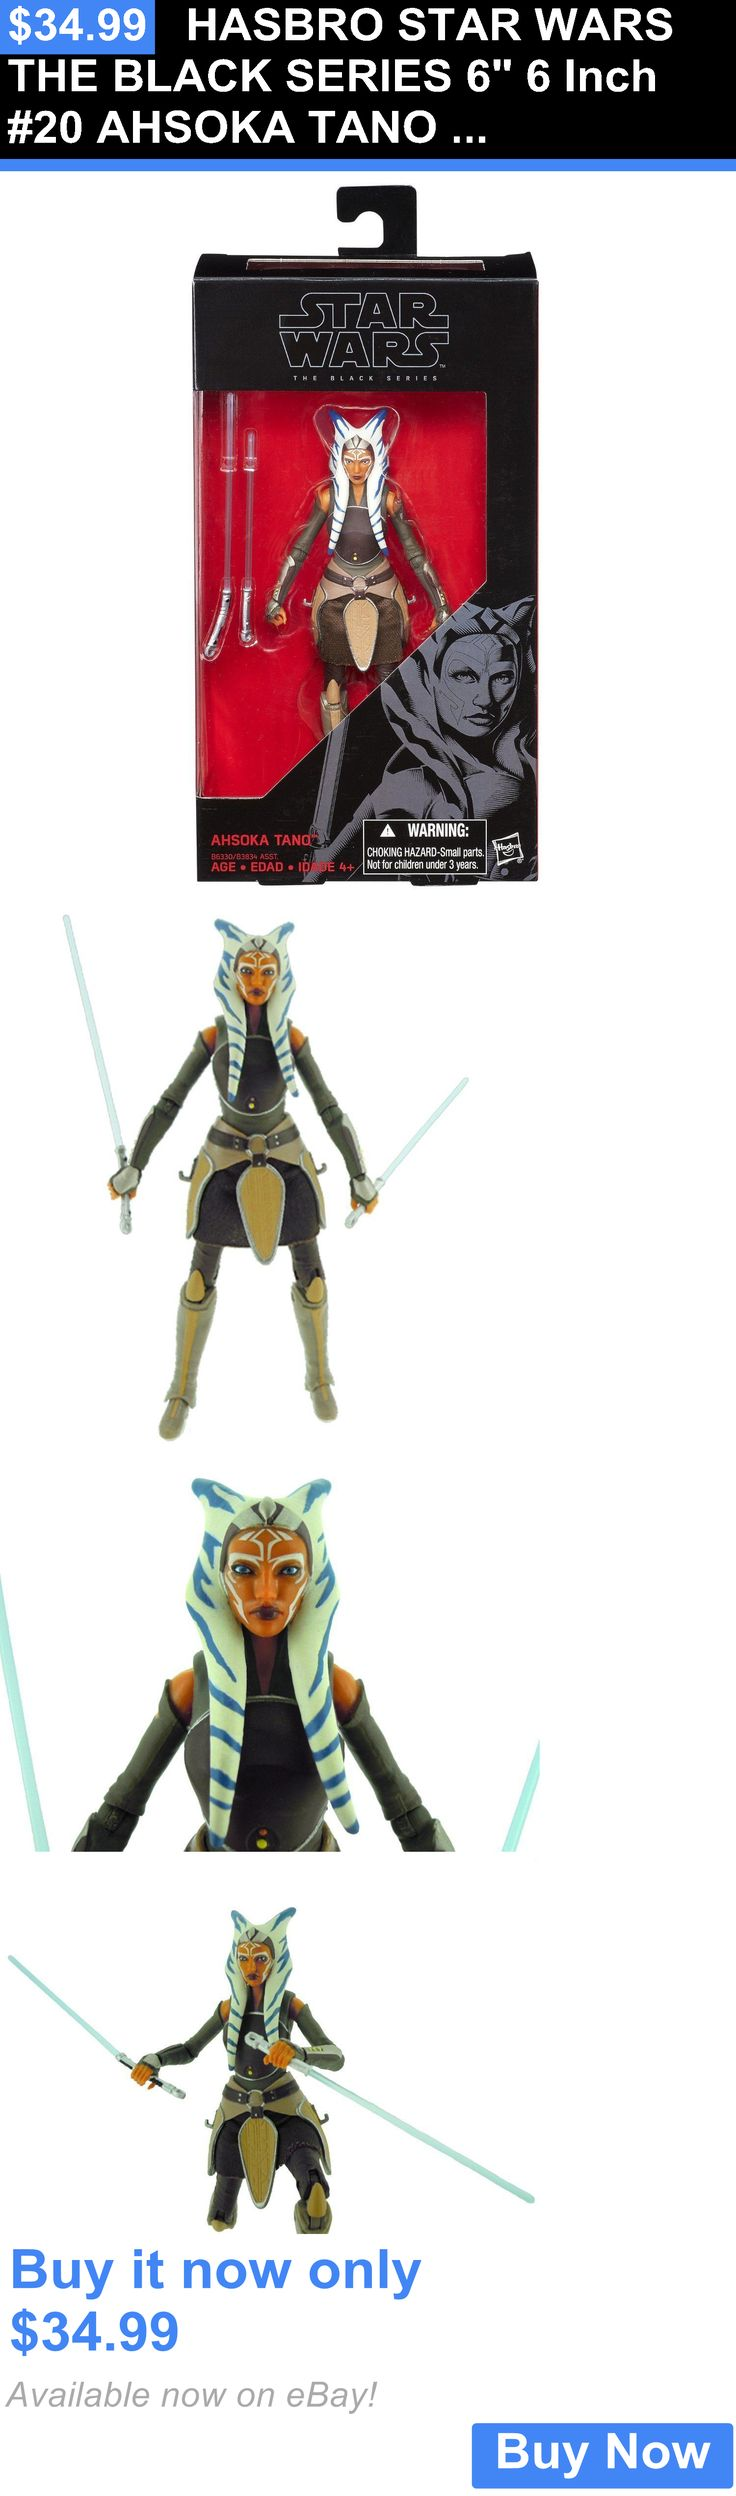 Toys And Games: Hasbro Star Wars The Black Series 6 6 Inch #20 Ahsoka Tano Action Figure New BUY IT NOW ONLY: $34.99